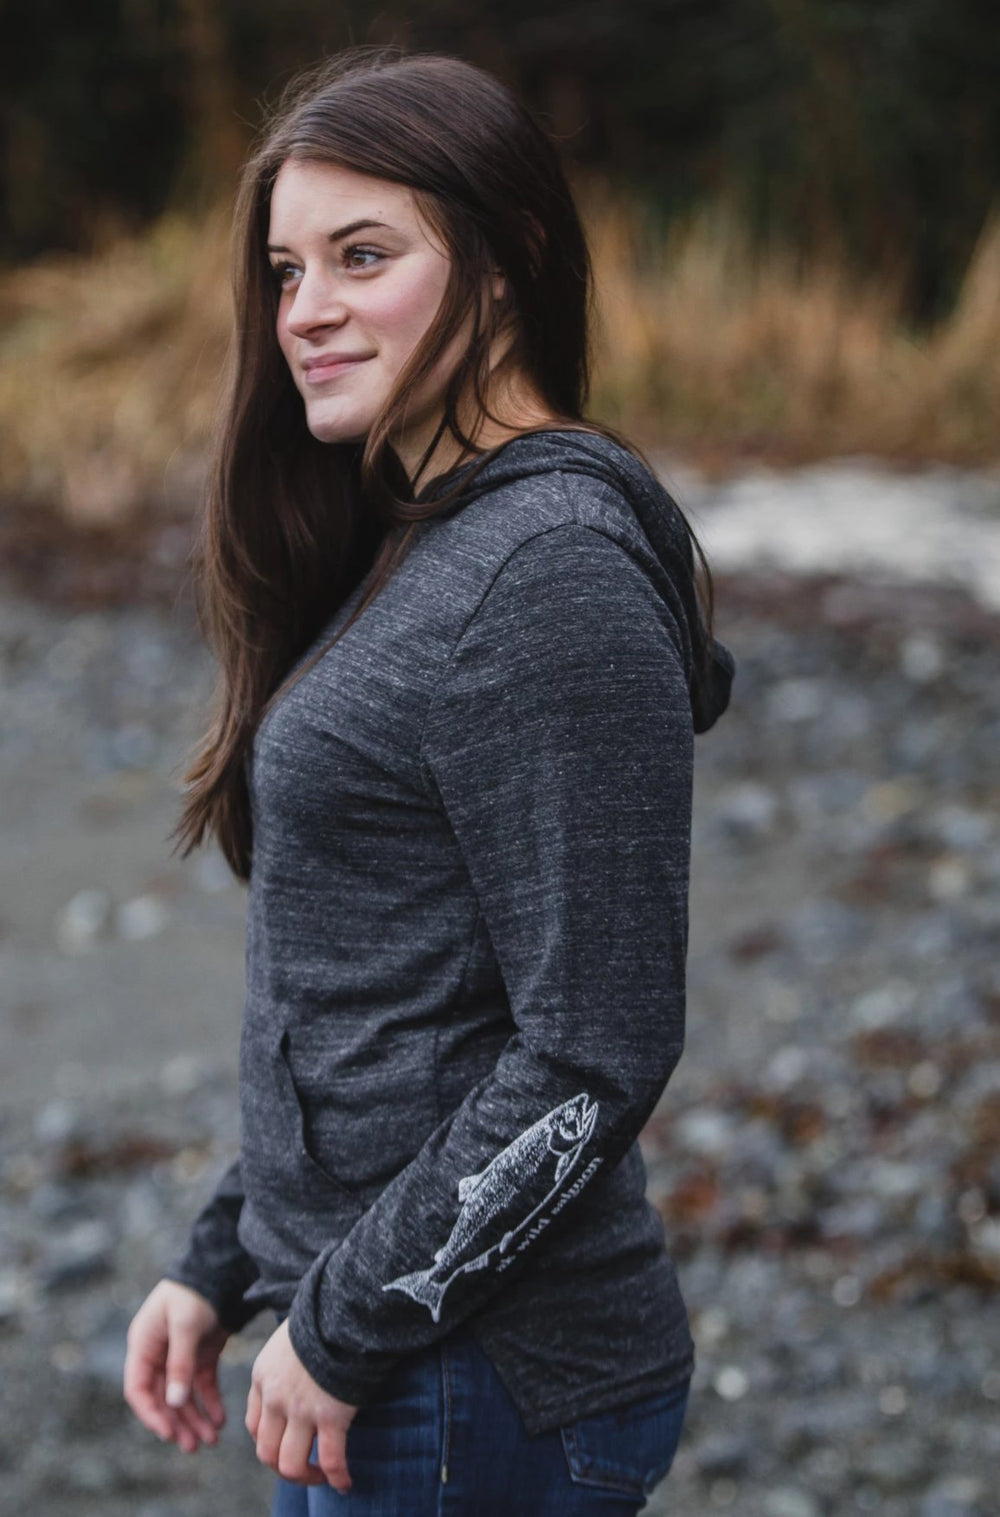 Slate AK Wild Salmon on Sleeve Triblend Lightweight Pullover $55.00